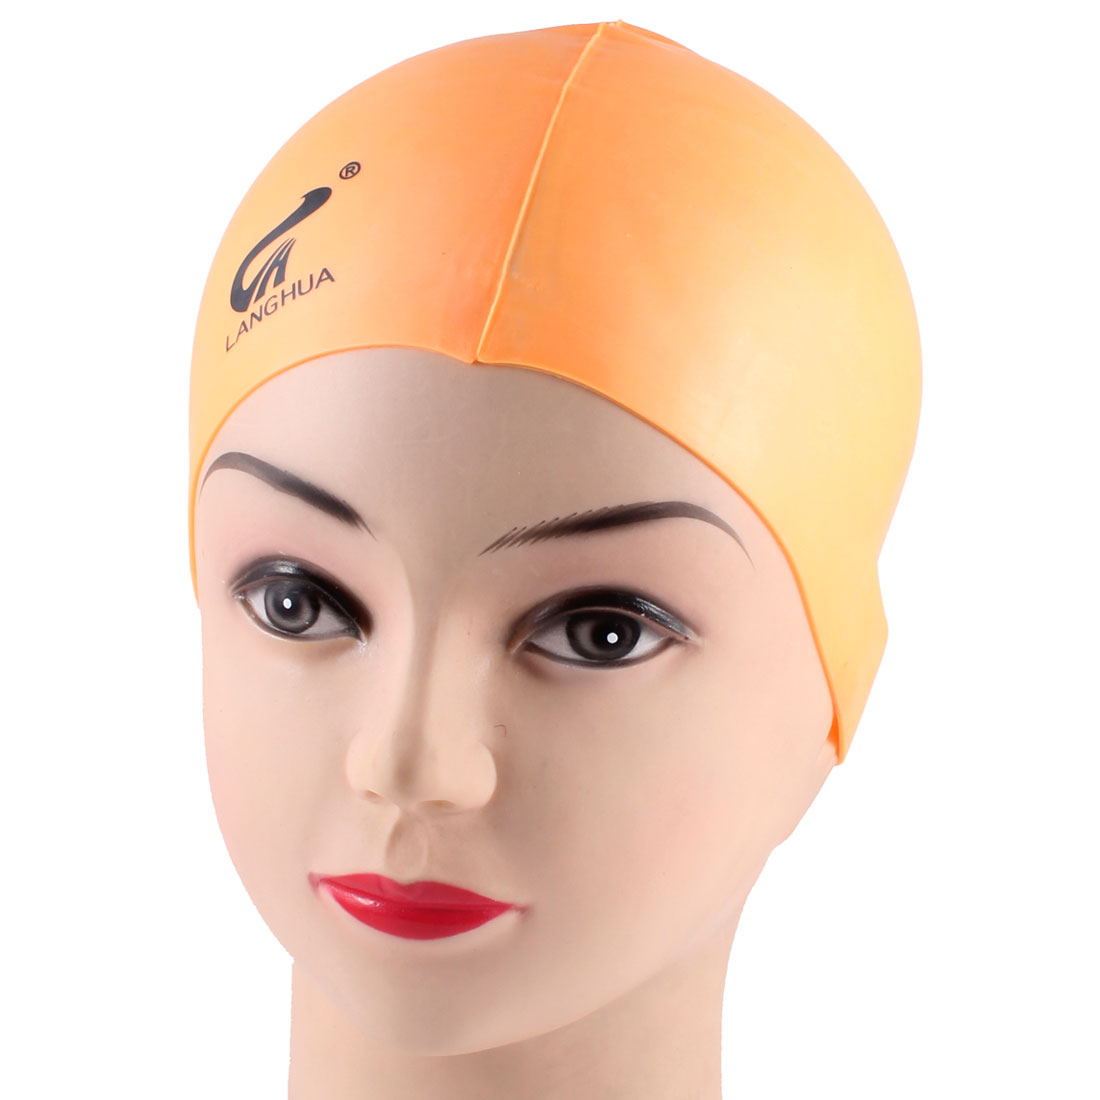 Adults Soft Silicone Dome Shape Elastic Swimming Cap Orange